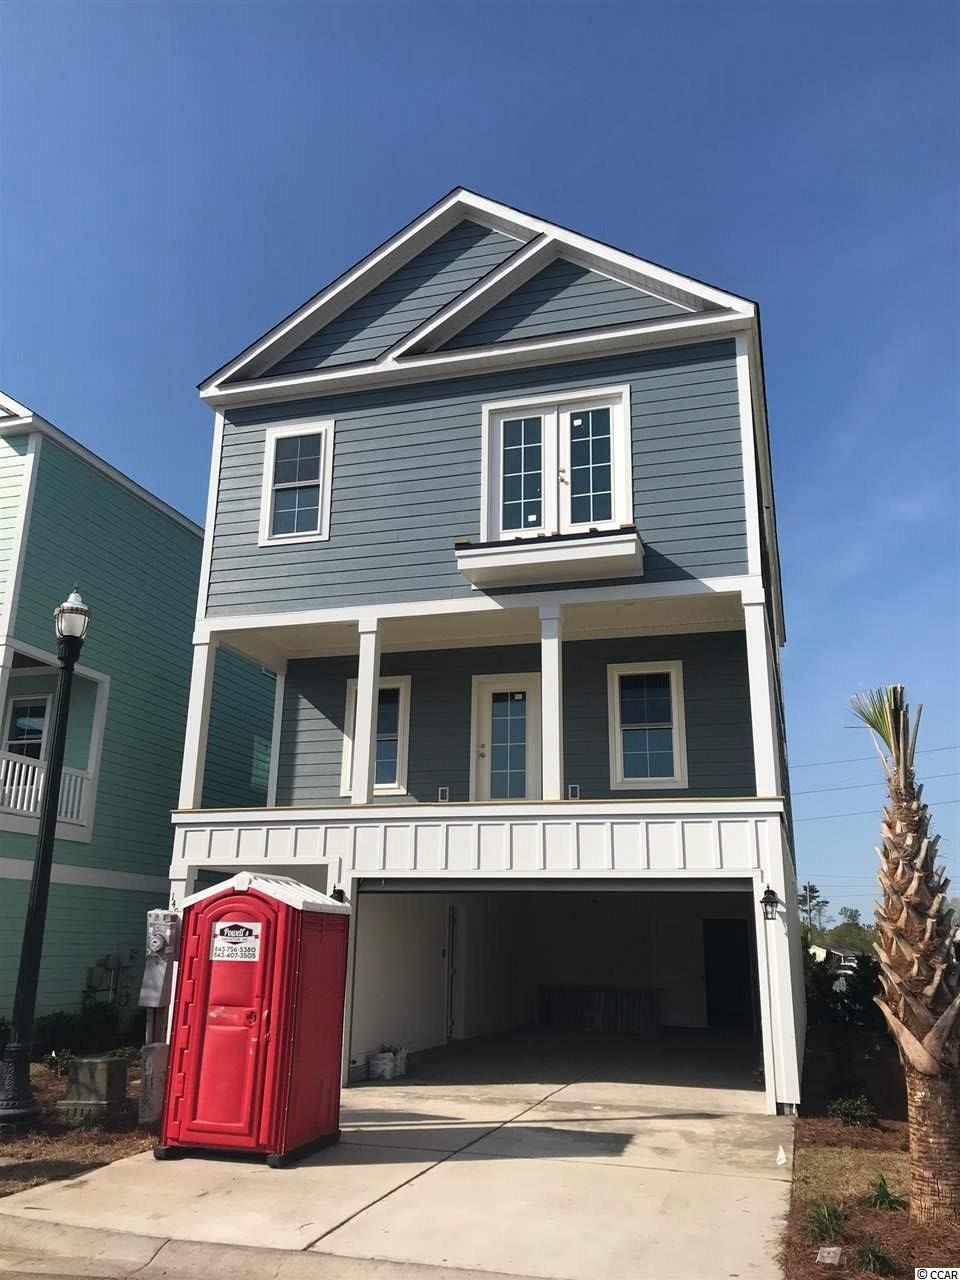 Lot 7 Mariners Rest Drive, North Myrtle Beach, SC 29582